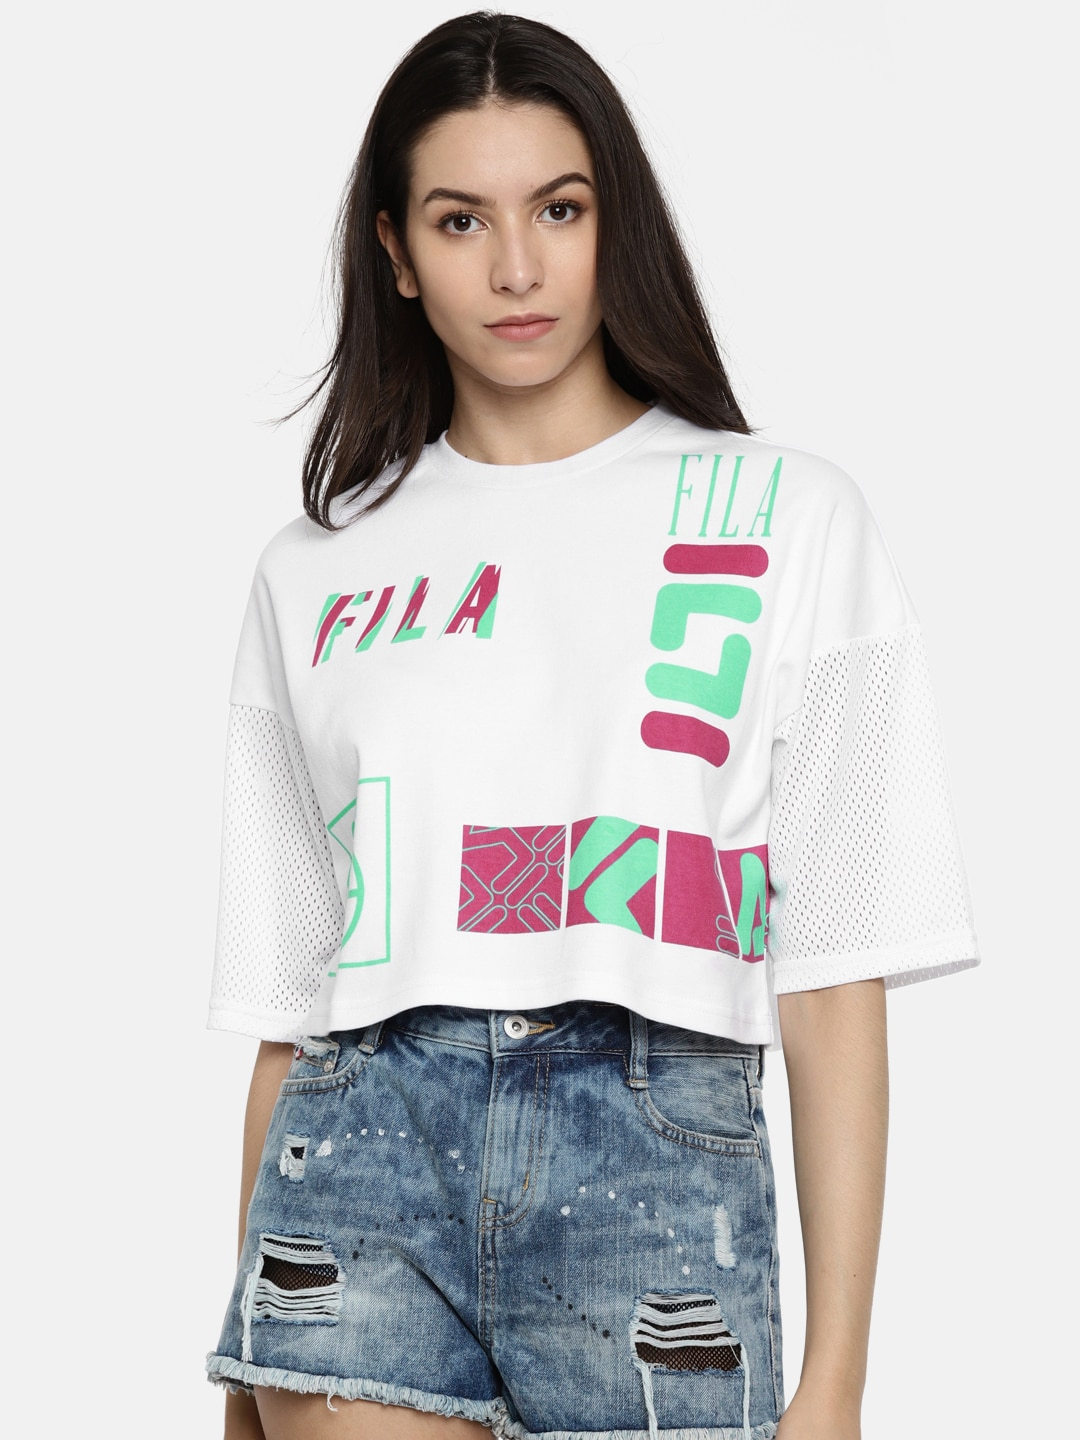 dd9e3a183084 Fila T-shirt - Buy Fila T-shirts for Men   Women Online in India